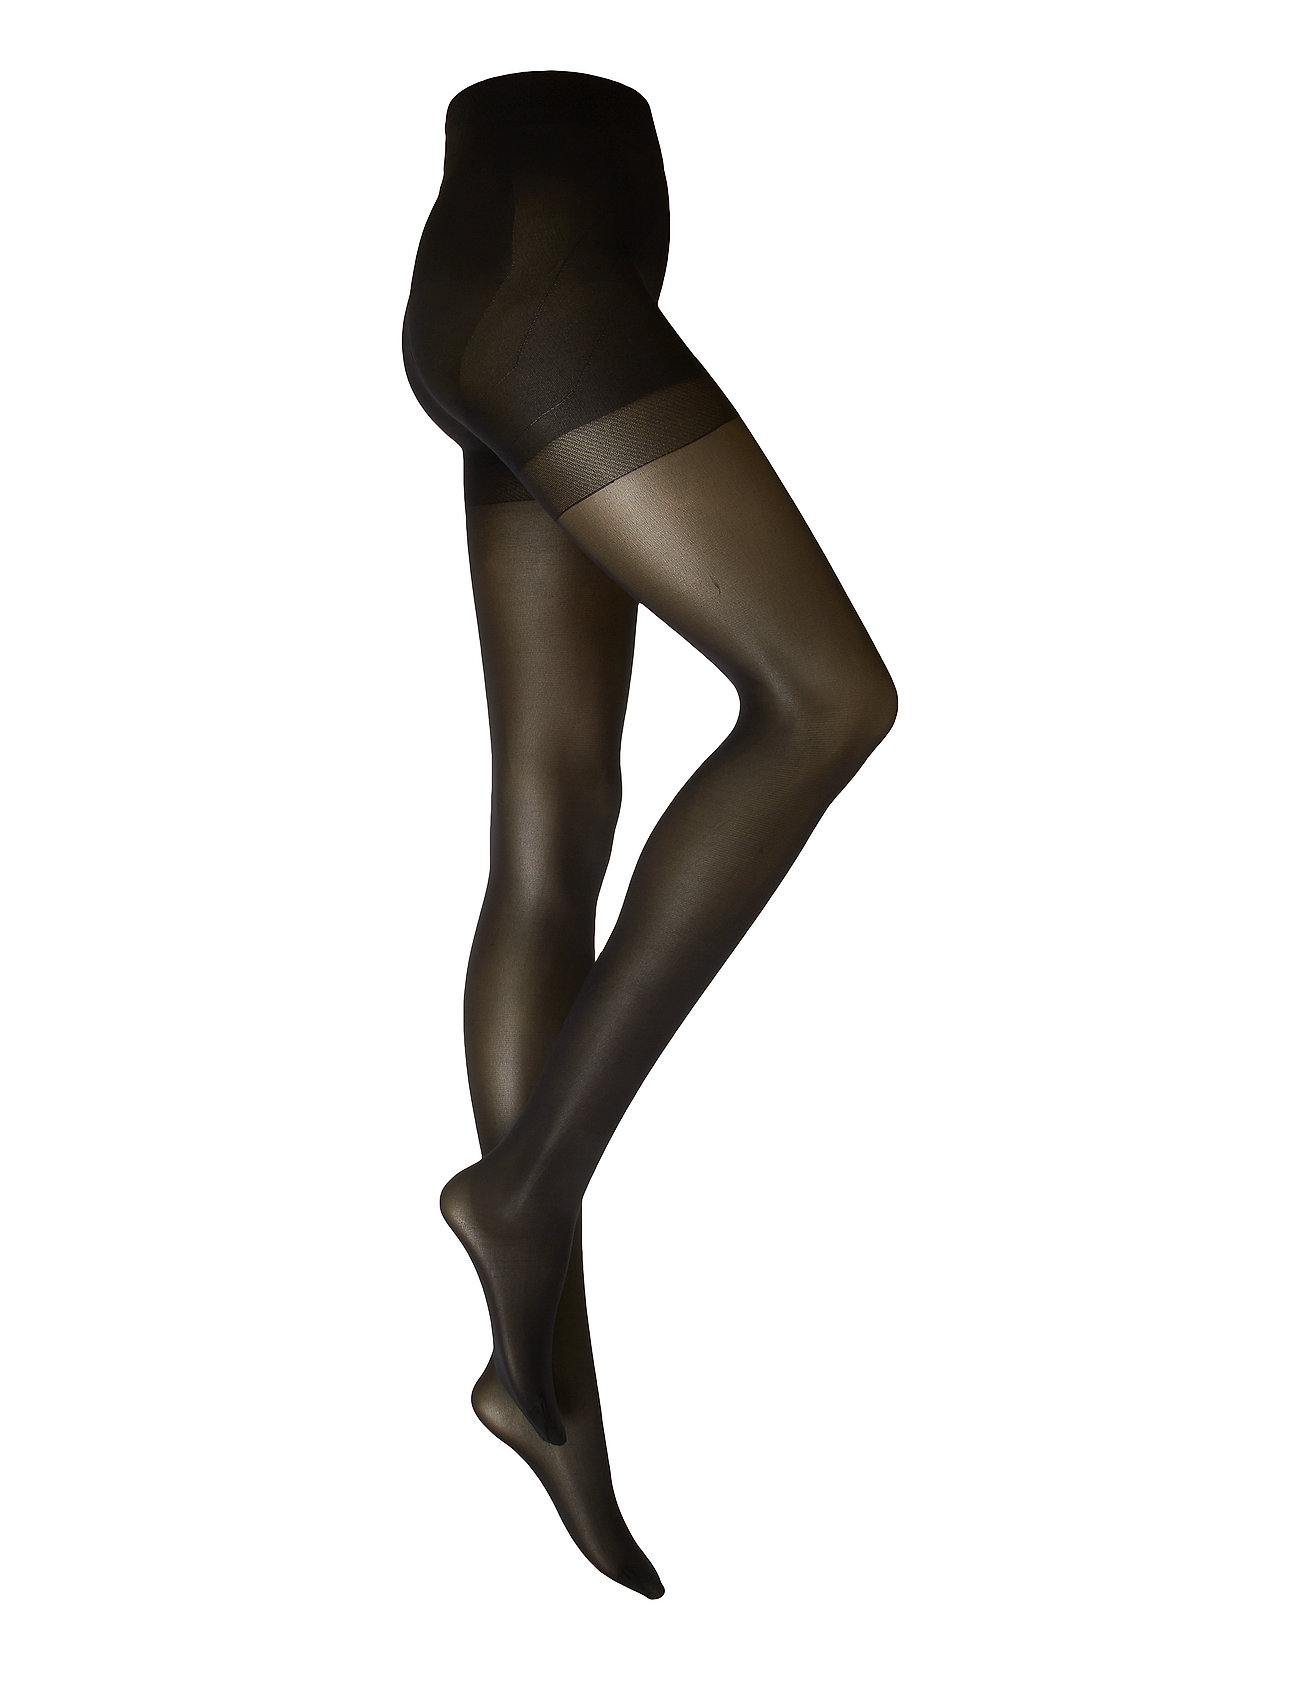 Swedish Stockings Anna Control Top tights 40D - BLACK